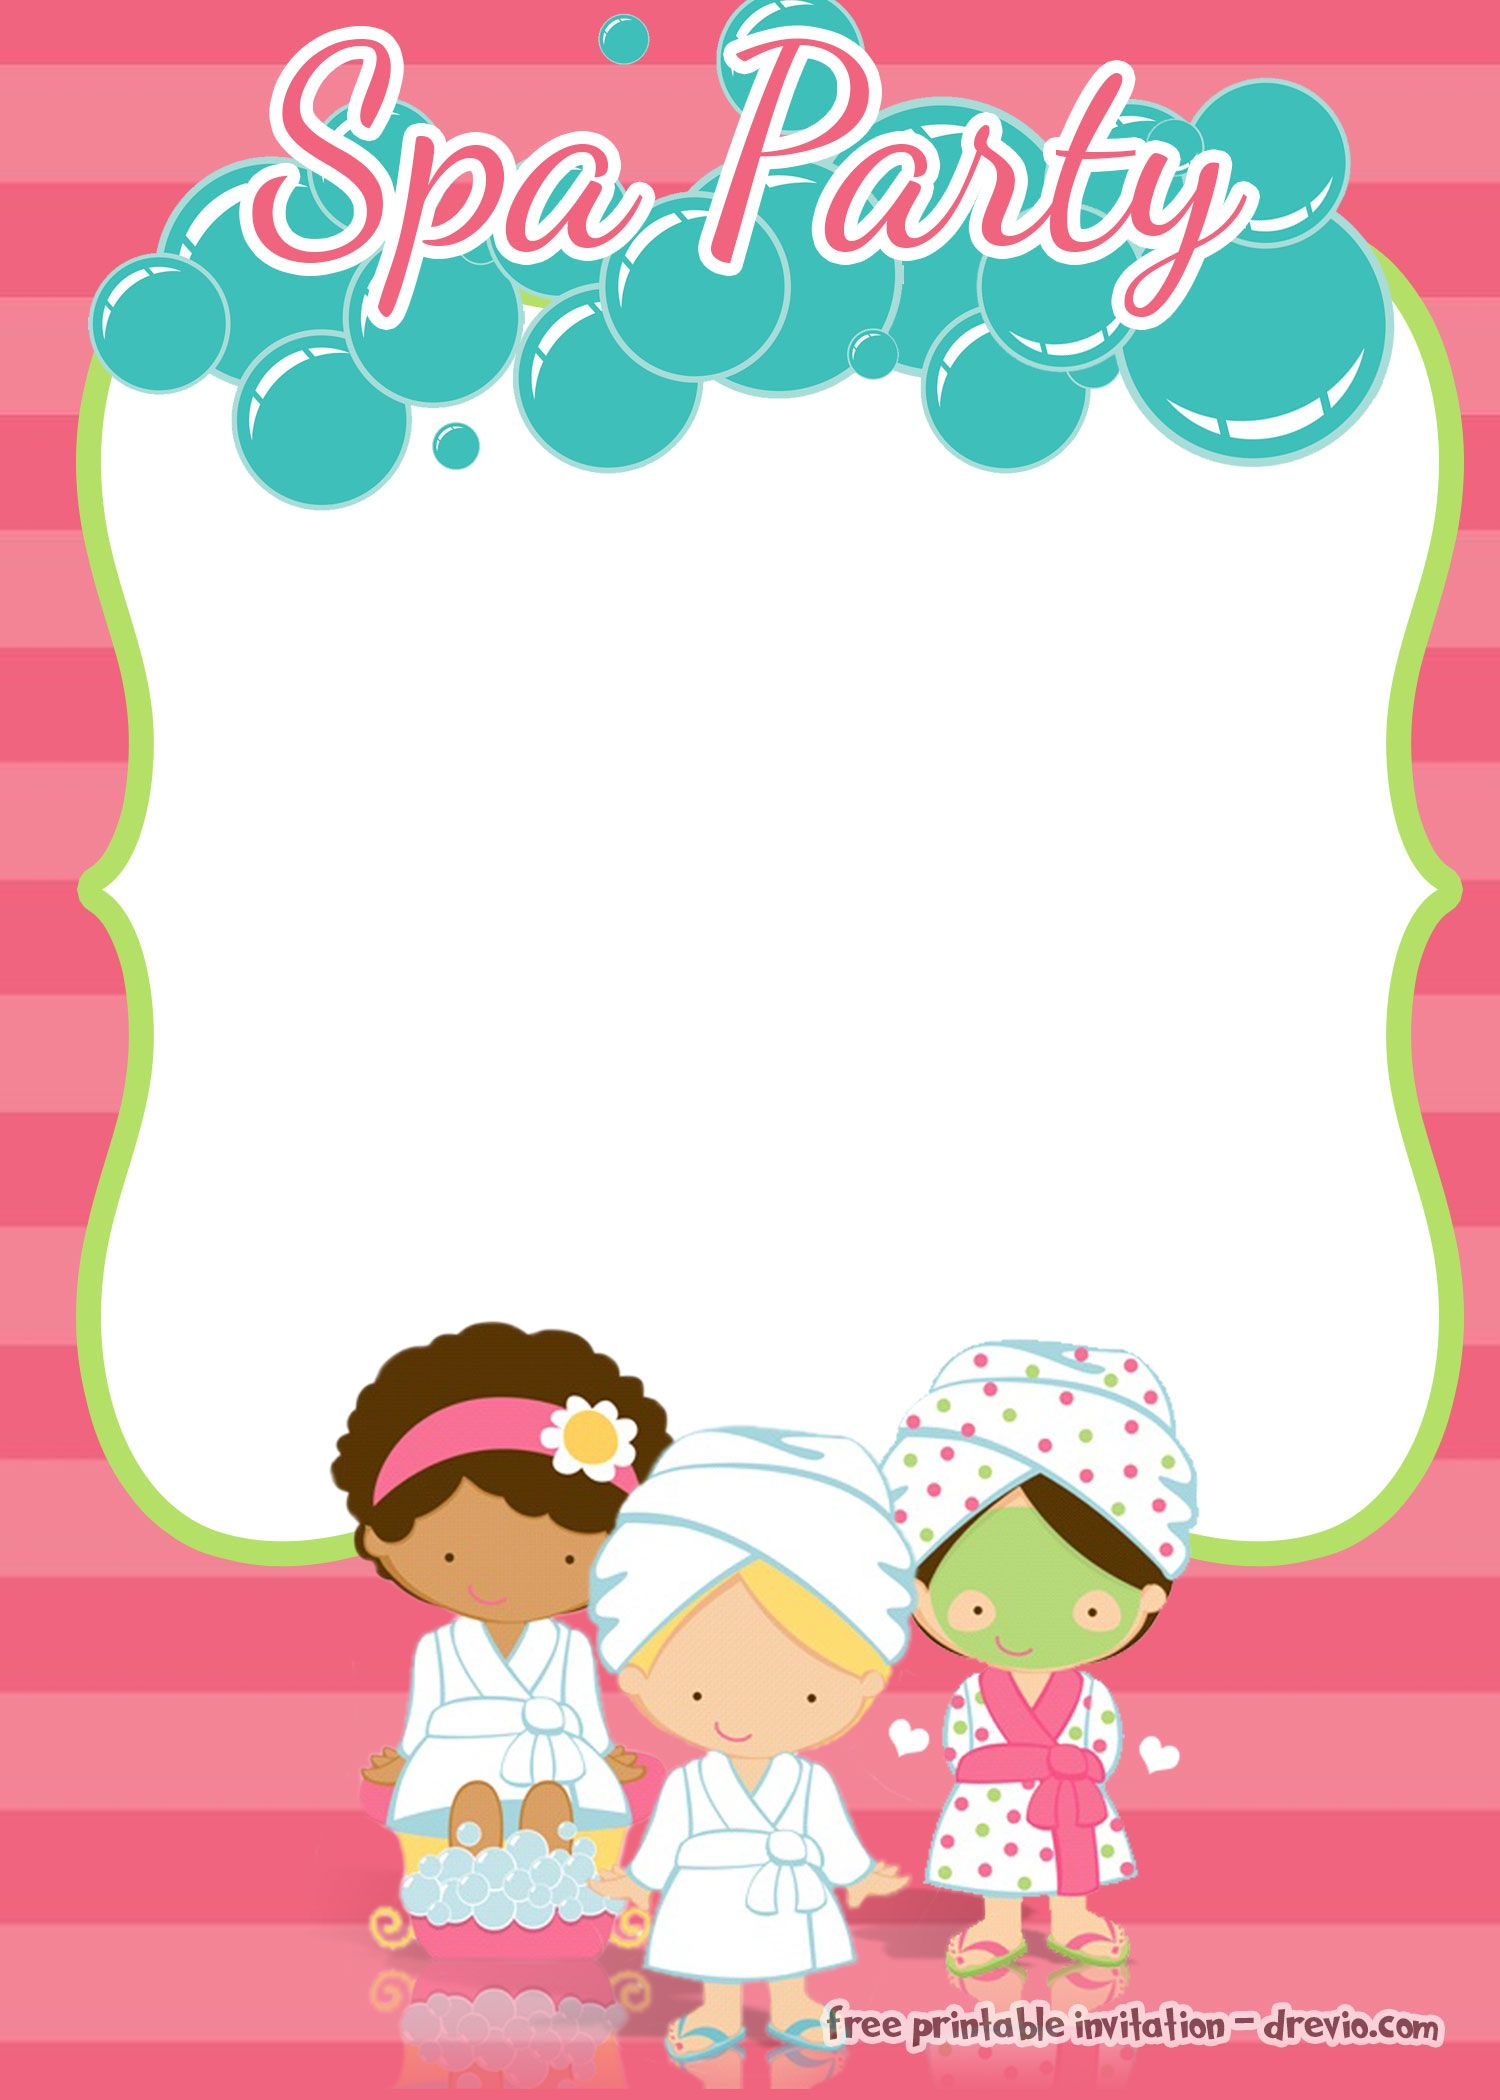 Get Spa Party Birthday Invitation Template - FREE Printable | FREE ...